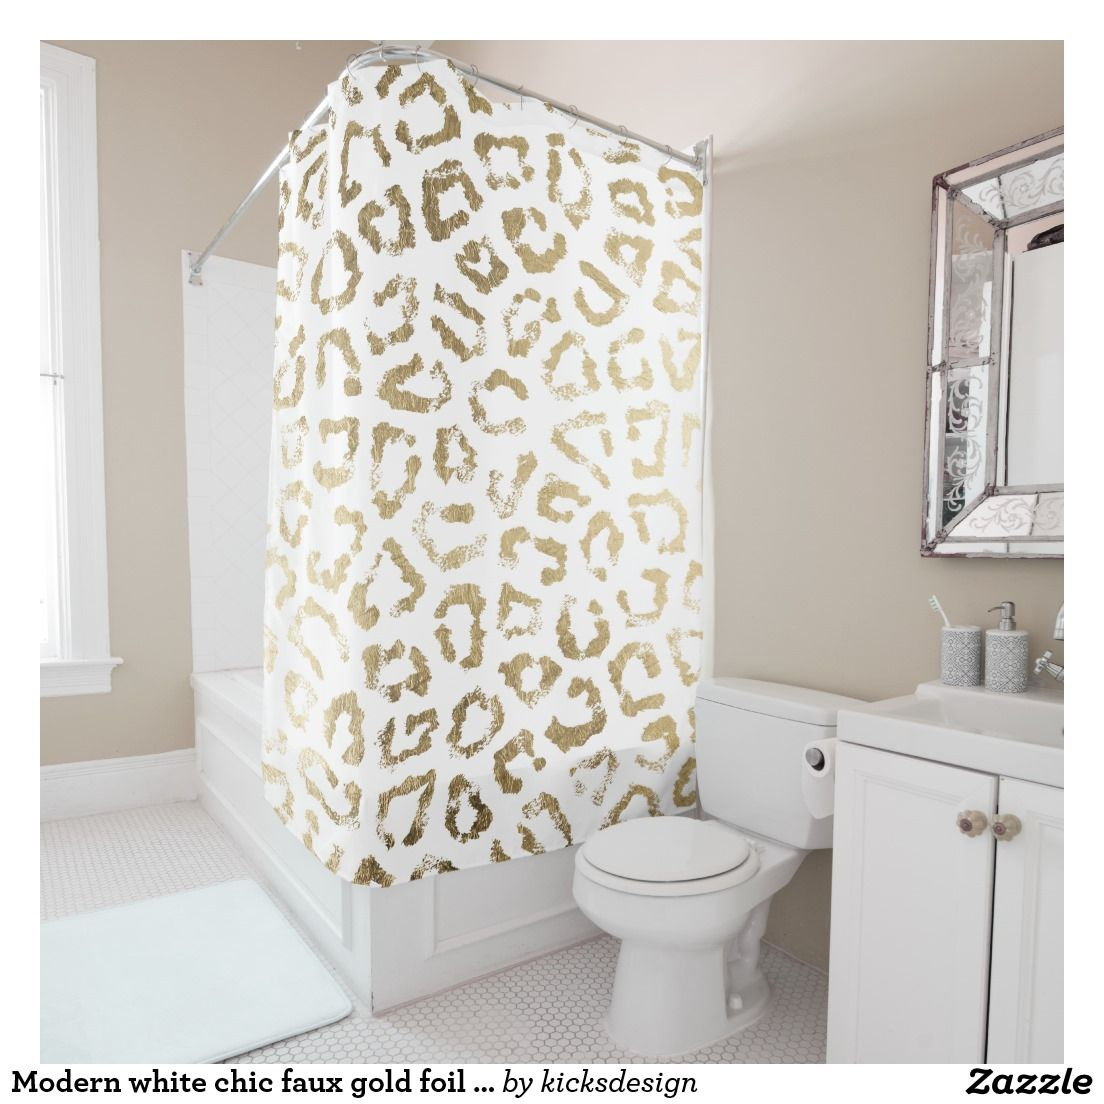 Modern white chic faux gold foil leopard print shower curtain ...